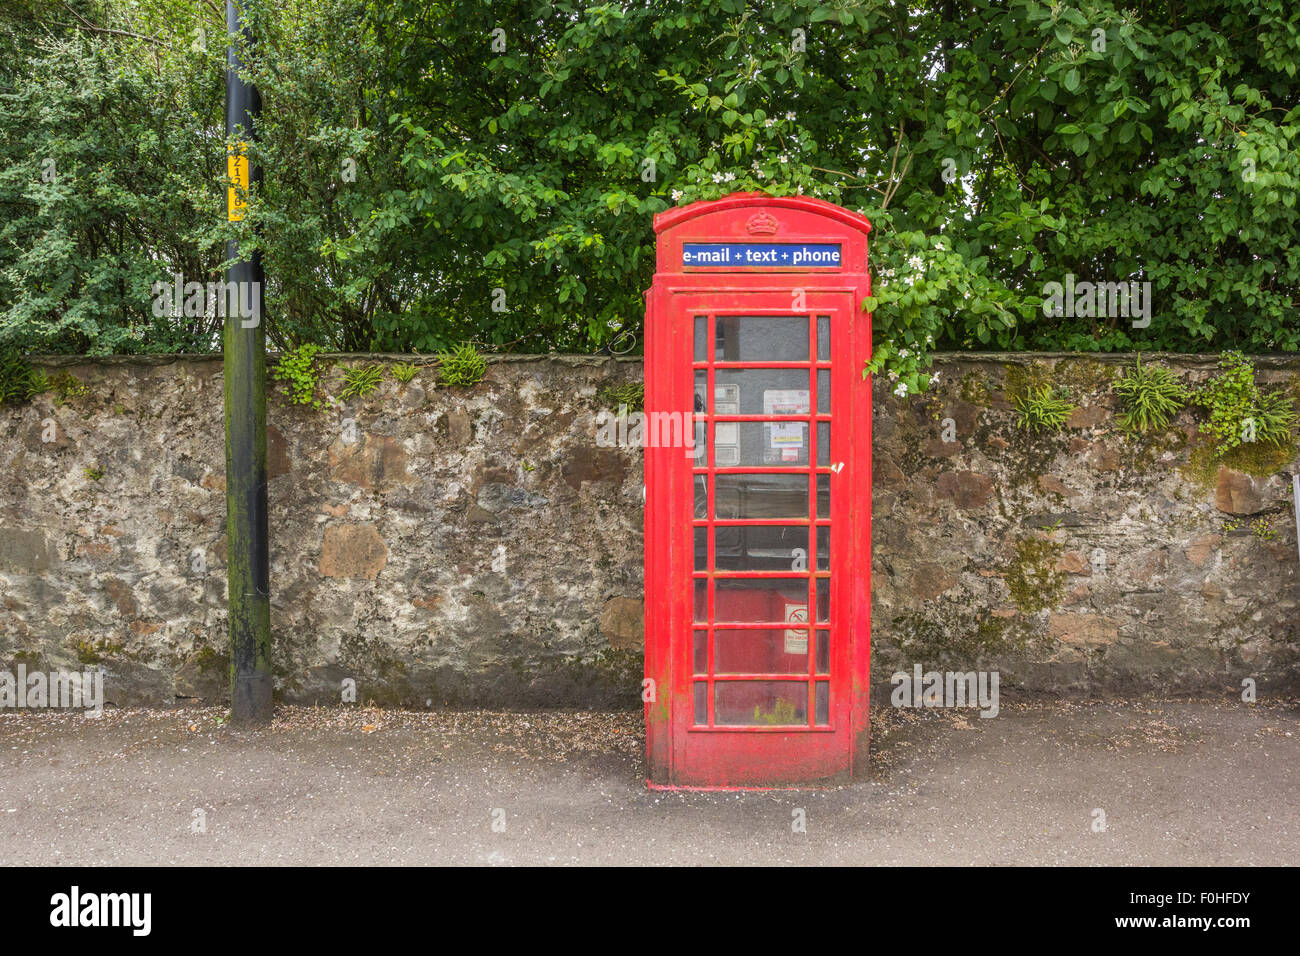 PHONE BOX, INVERARAY, SCOTLAND, CIRCA JUNE 2014. A typical phone box in Scotland. - Stock Image